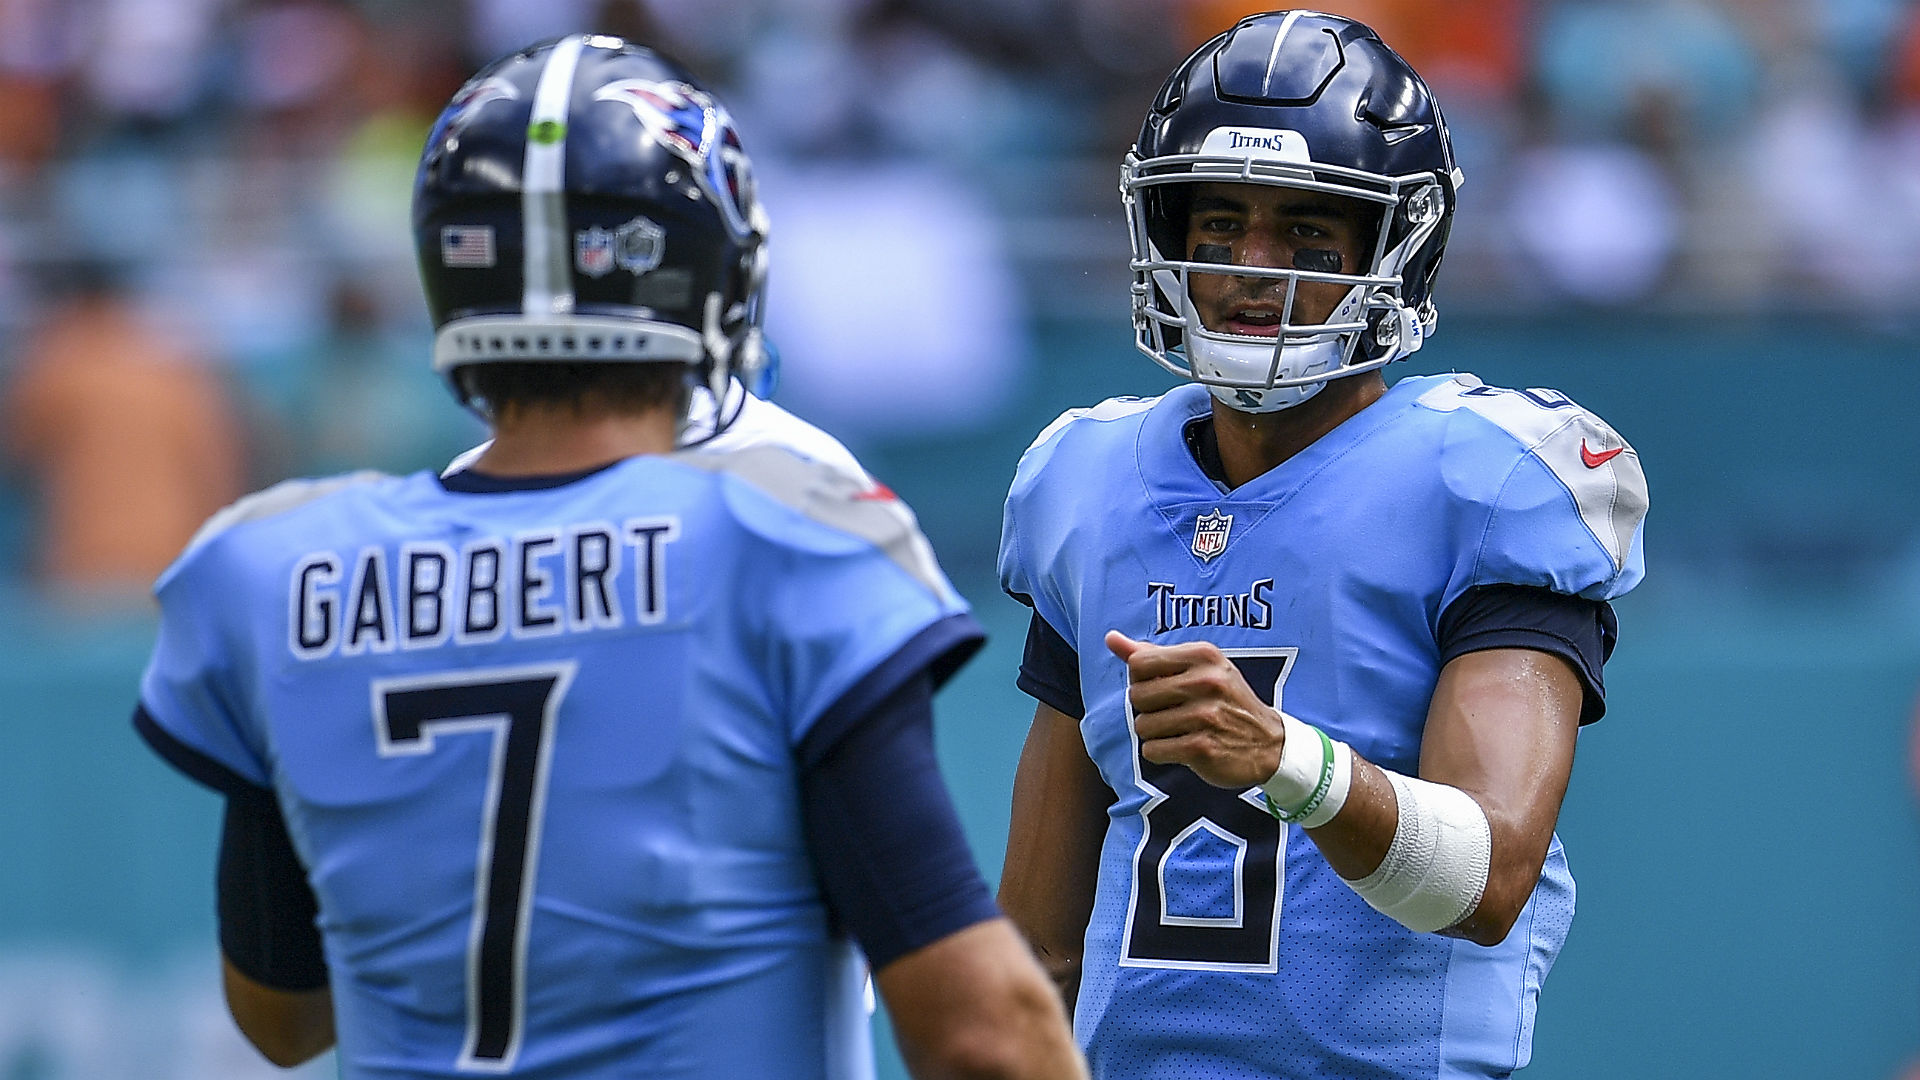 Marcus Mariota now playing after starting game for Titans on bench